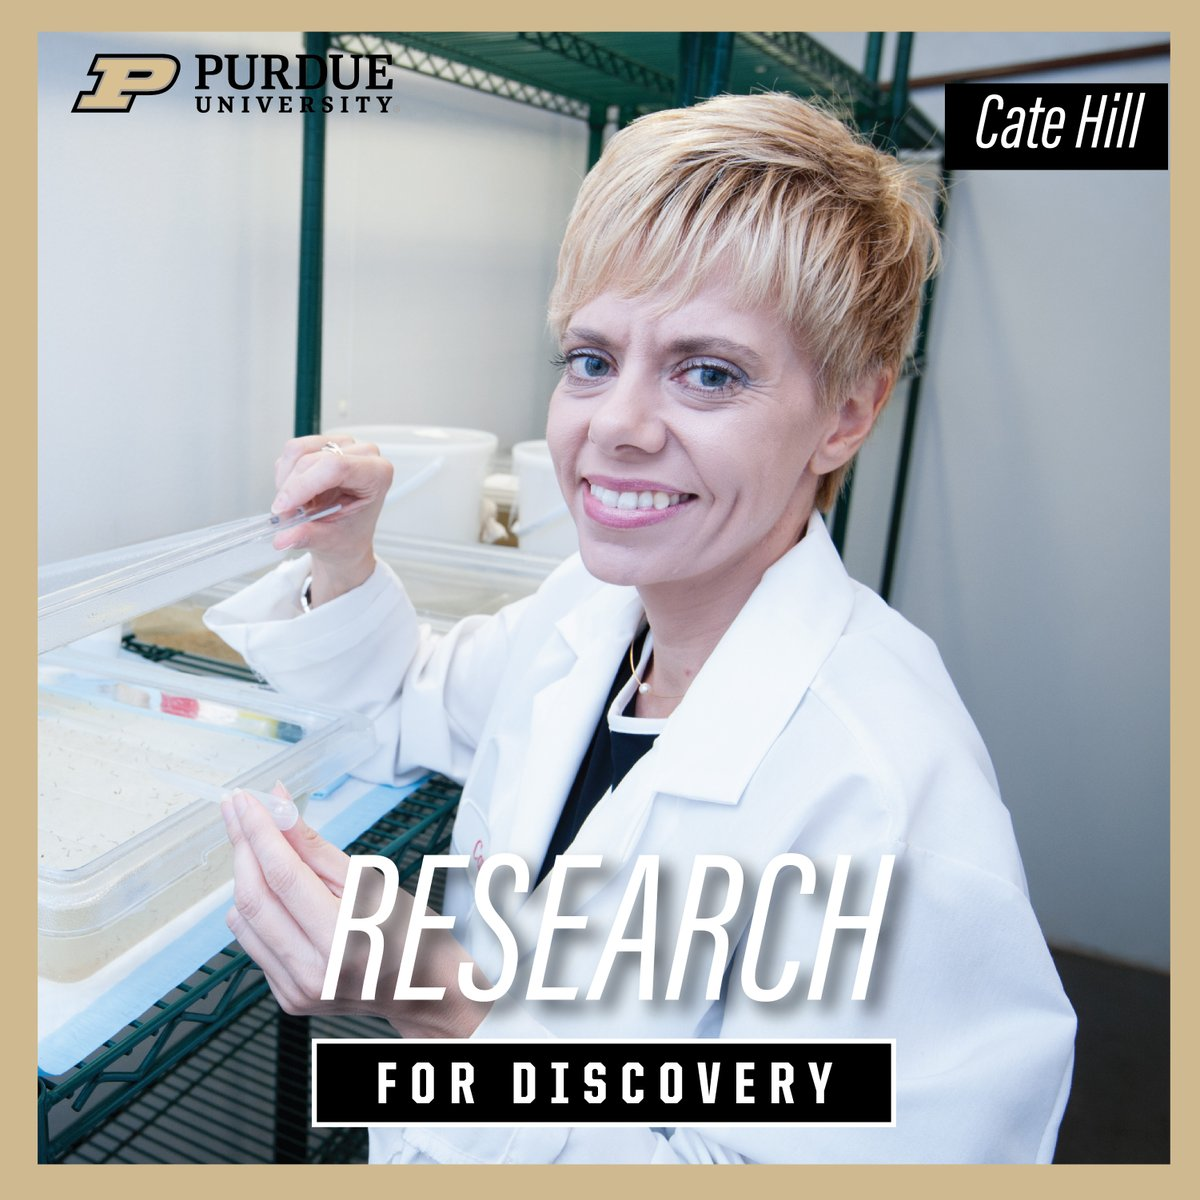 Cate Hill with the Purdue Department of Entomology in the Purdue College of Agriculture is inviting citizen scientists to collect and send in ticks for research on tick-borne diseases in Indiana. ow.ly/ILHM50zQWqJ #TheNextGiantLeap #PurdueDiscovery @PurdueAg